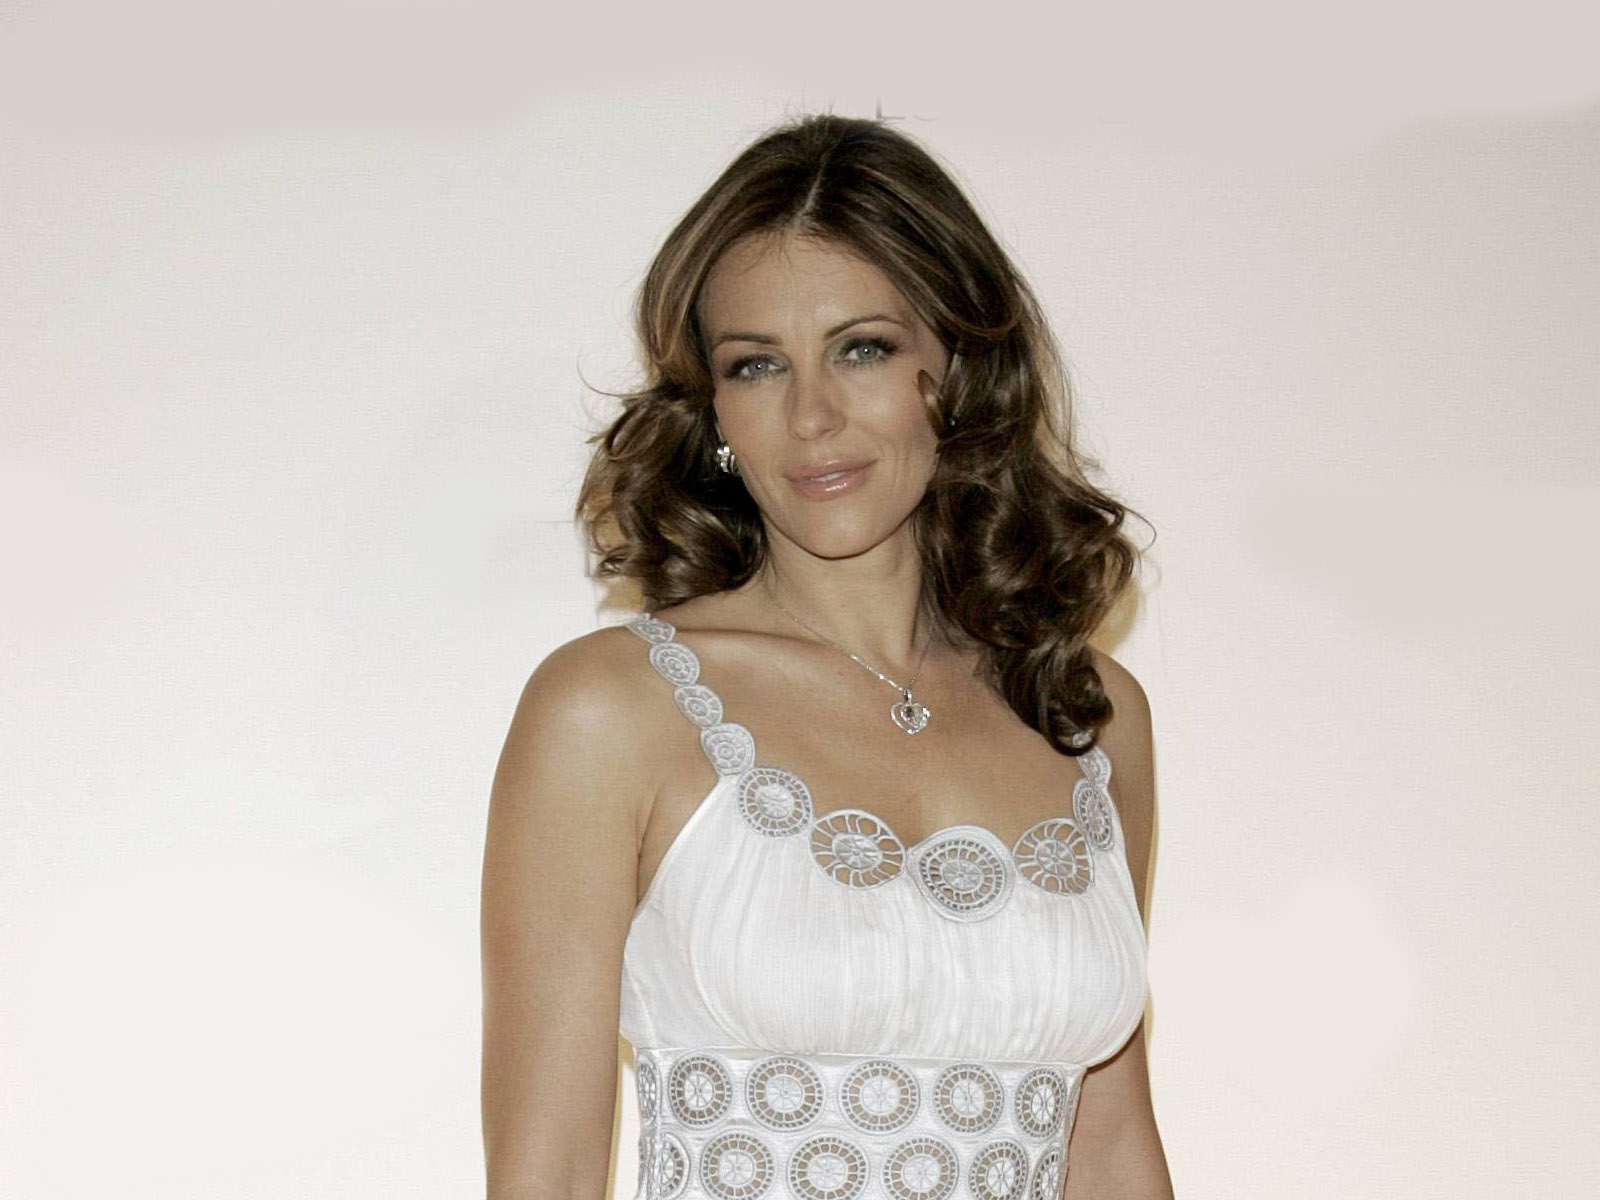 Elizabeth Hurley Wallpaper HD Backgrounds Images Pictures 1600x1200